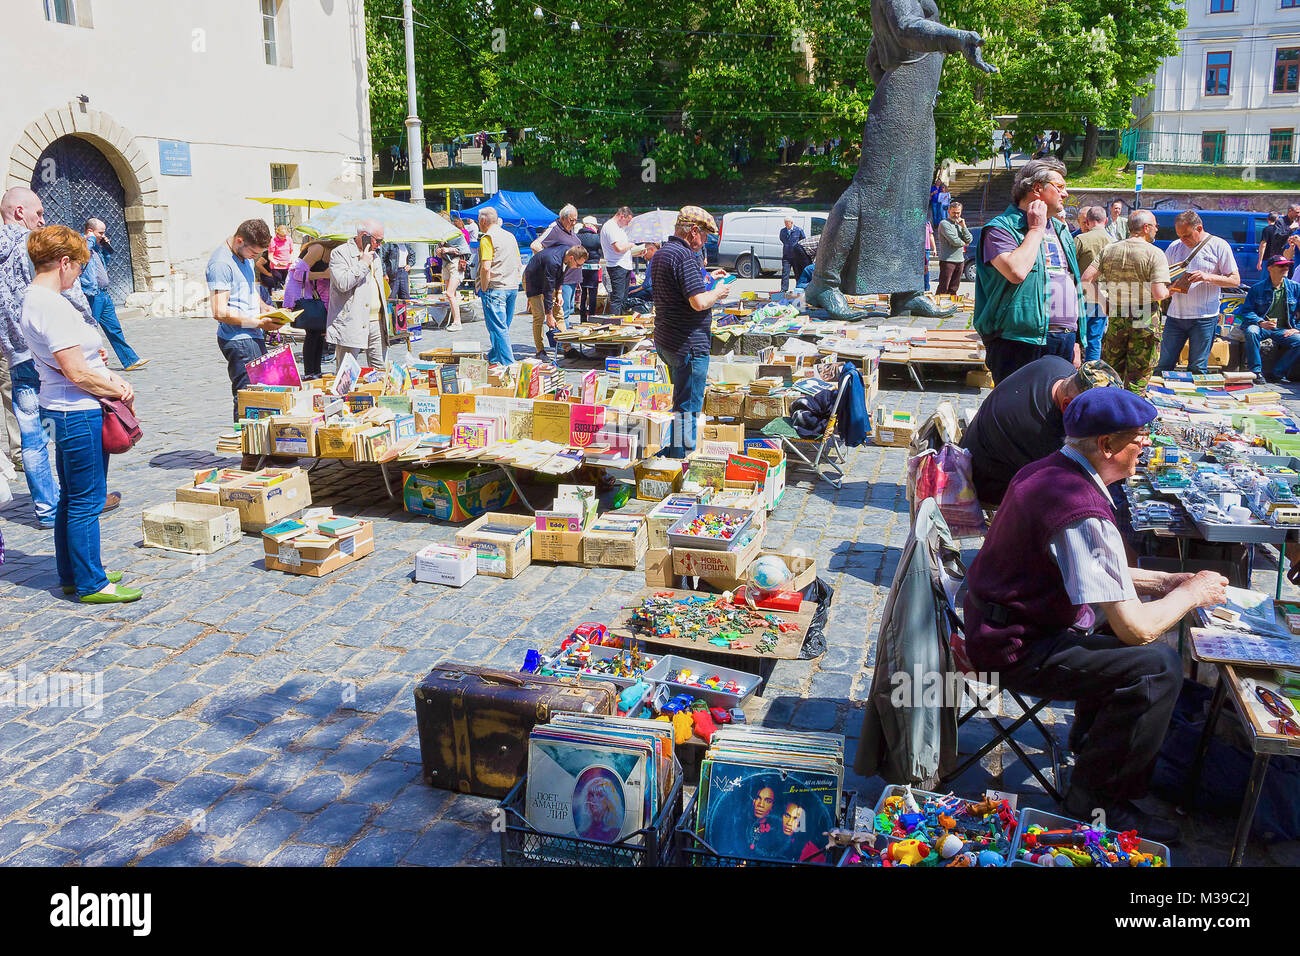 Lviv, Ukraine - May 6, 2017: The stalls of the flea market in Museum square offer different goods - old medals, - Stock Image